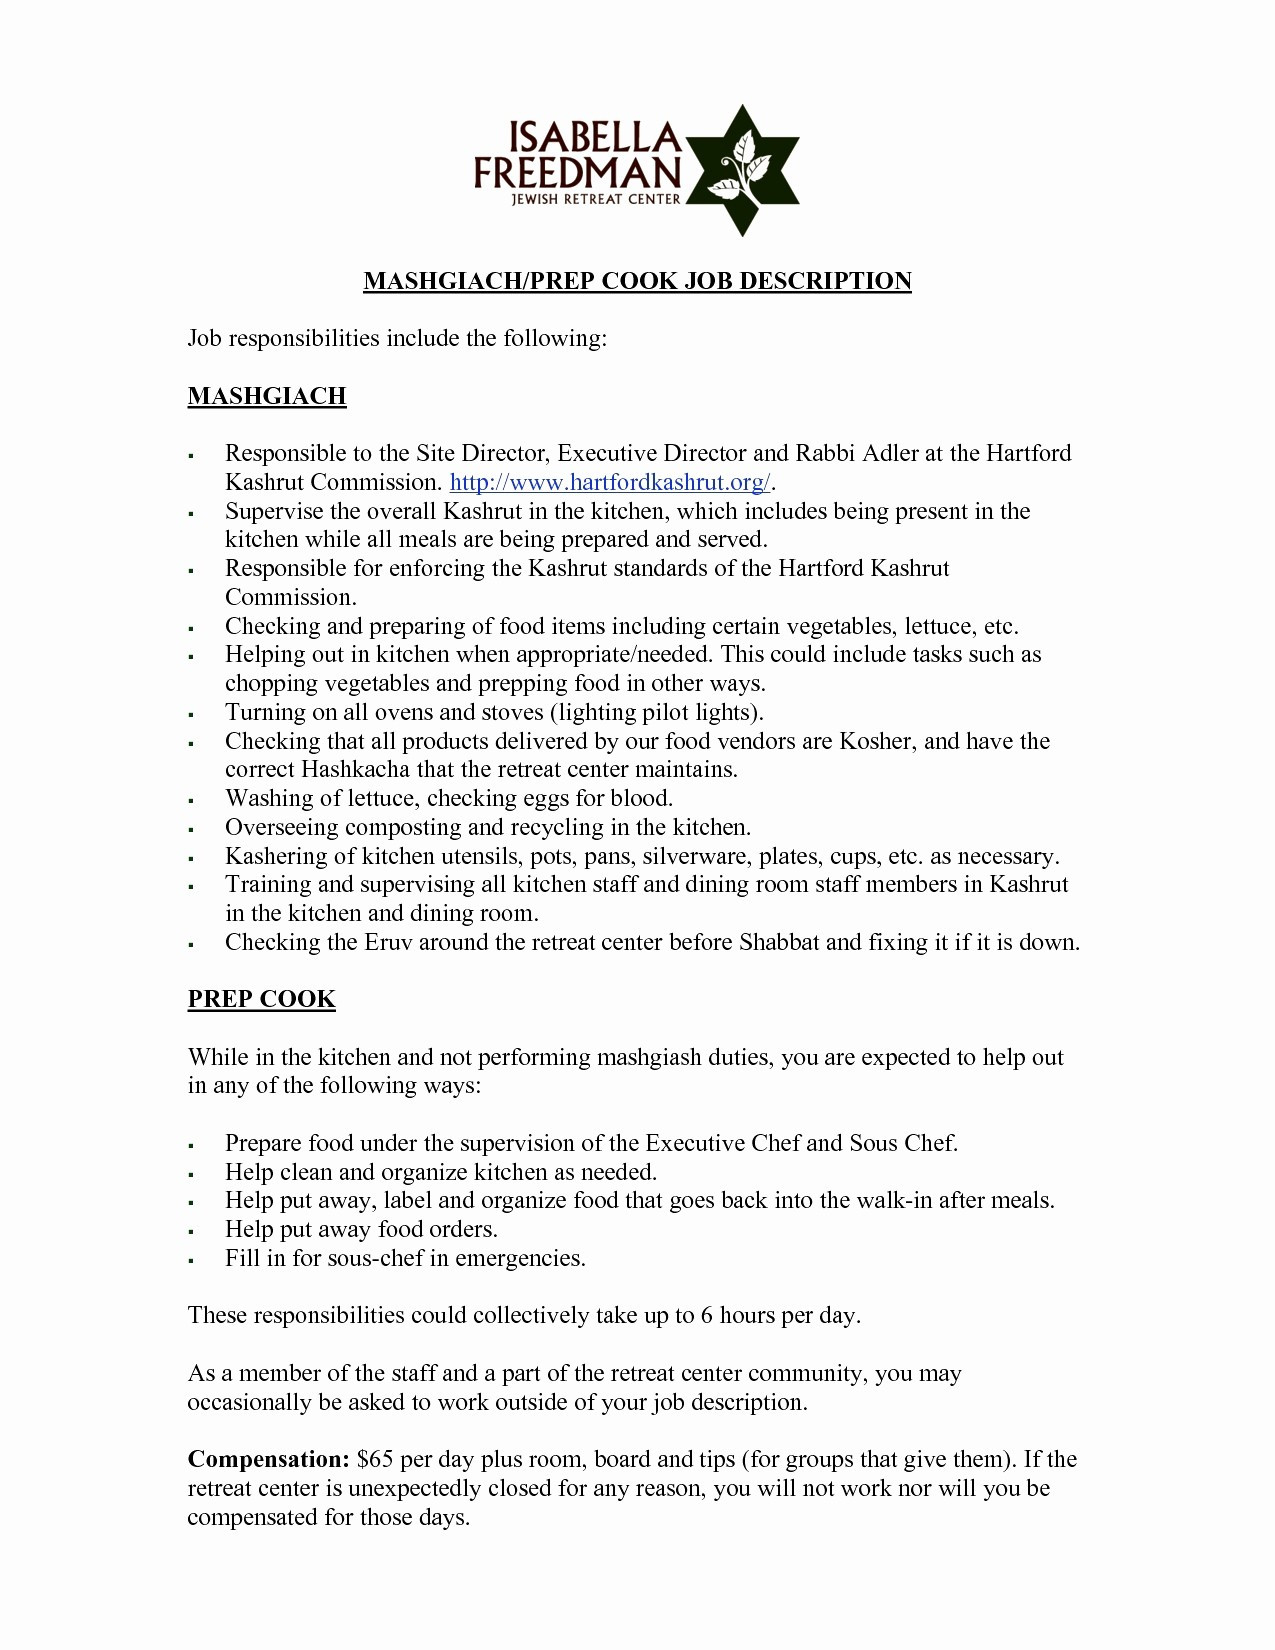 Resume References Template - Customer Service Executive Job Description Resume Reference Resume